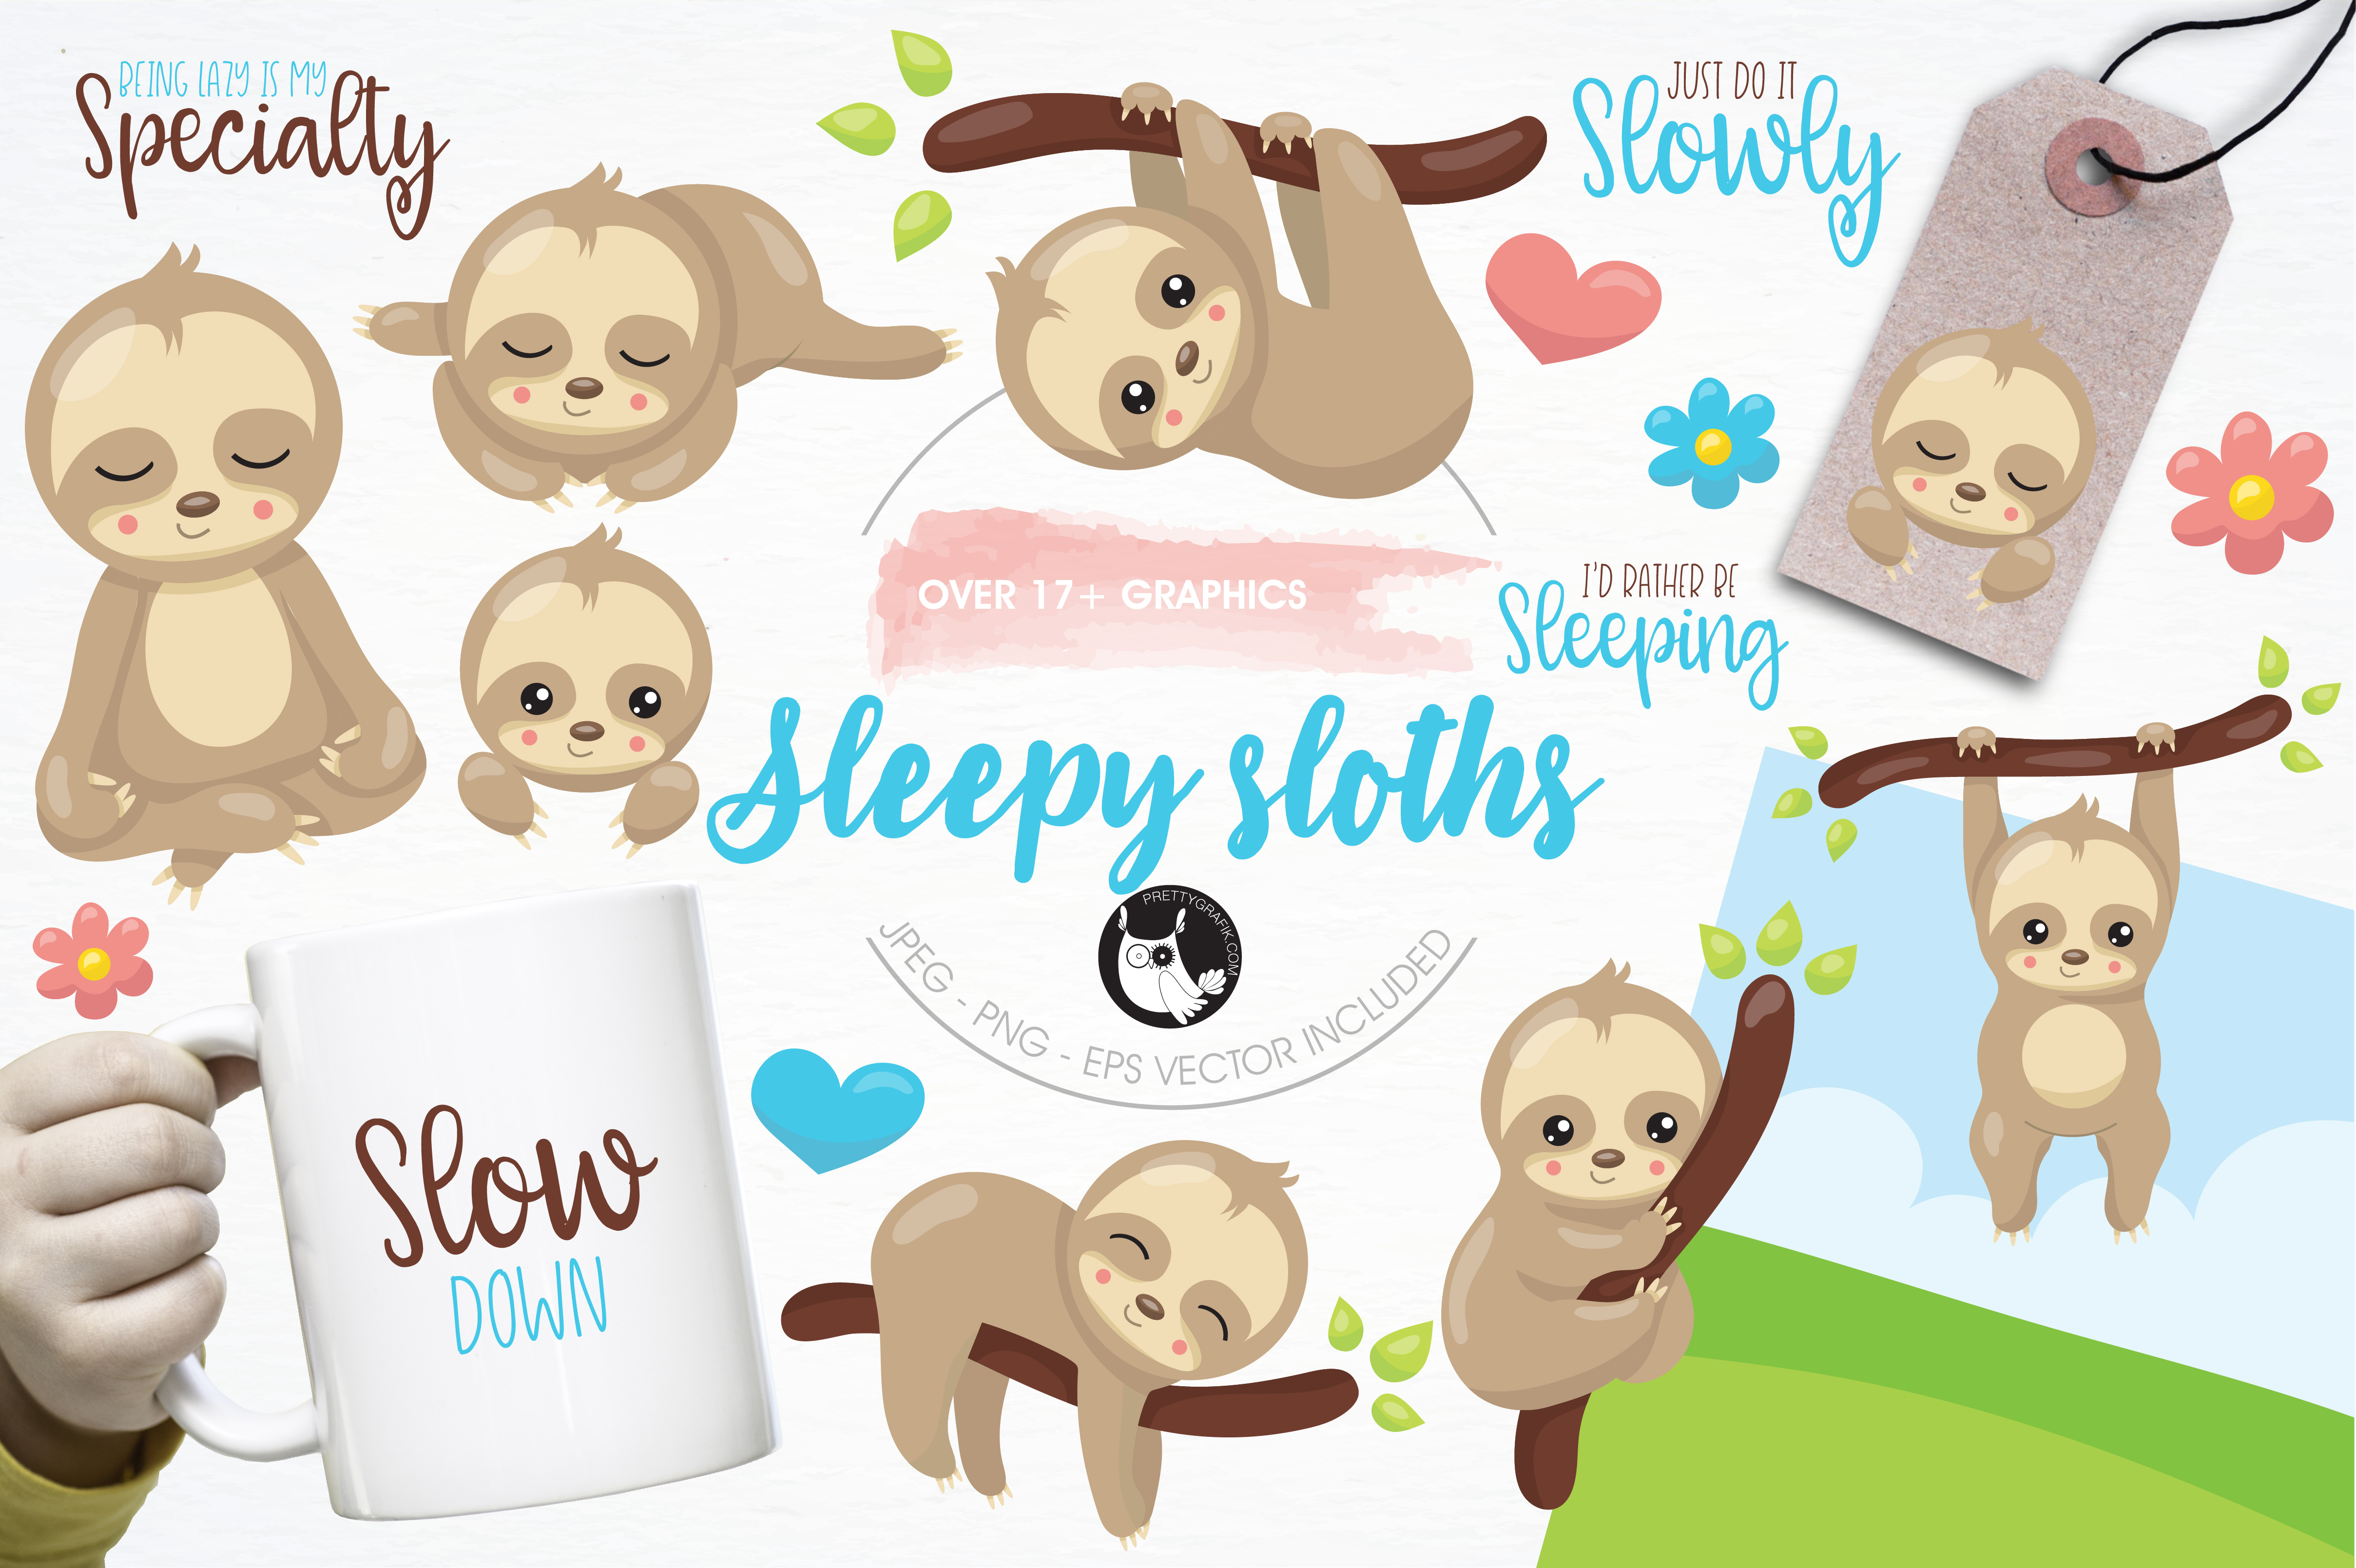 Sleepy sloth graphics and illustrations example image 1